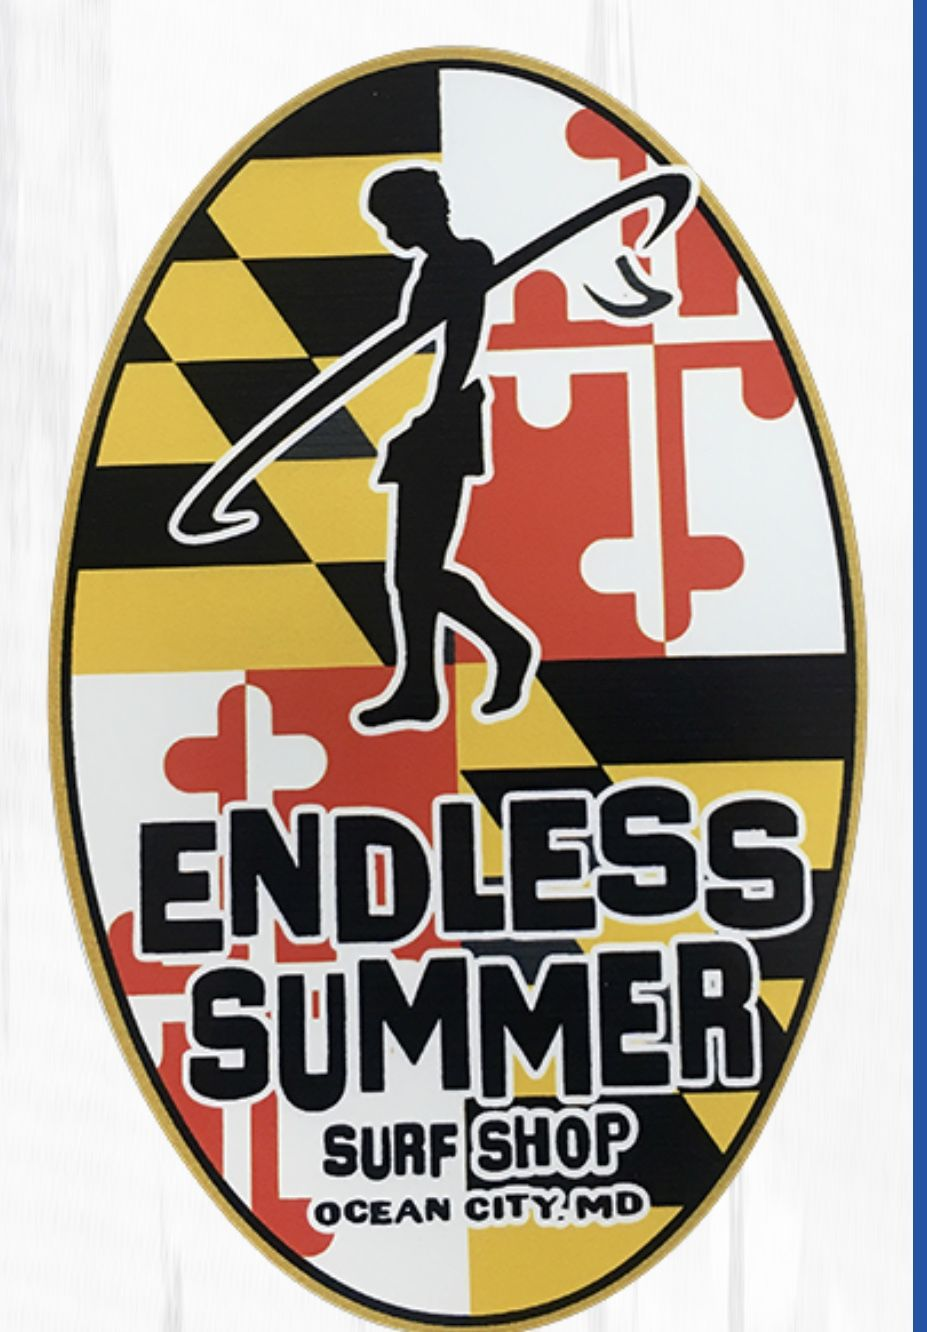 Pin by M Jonz on Maryland Summer surf, Surf shop